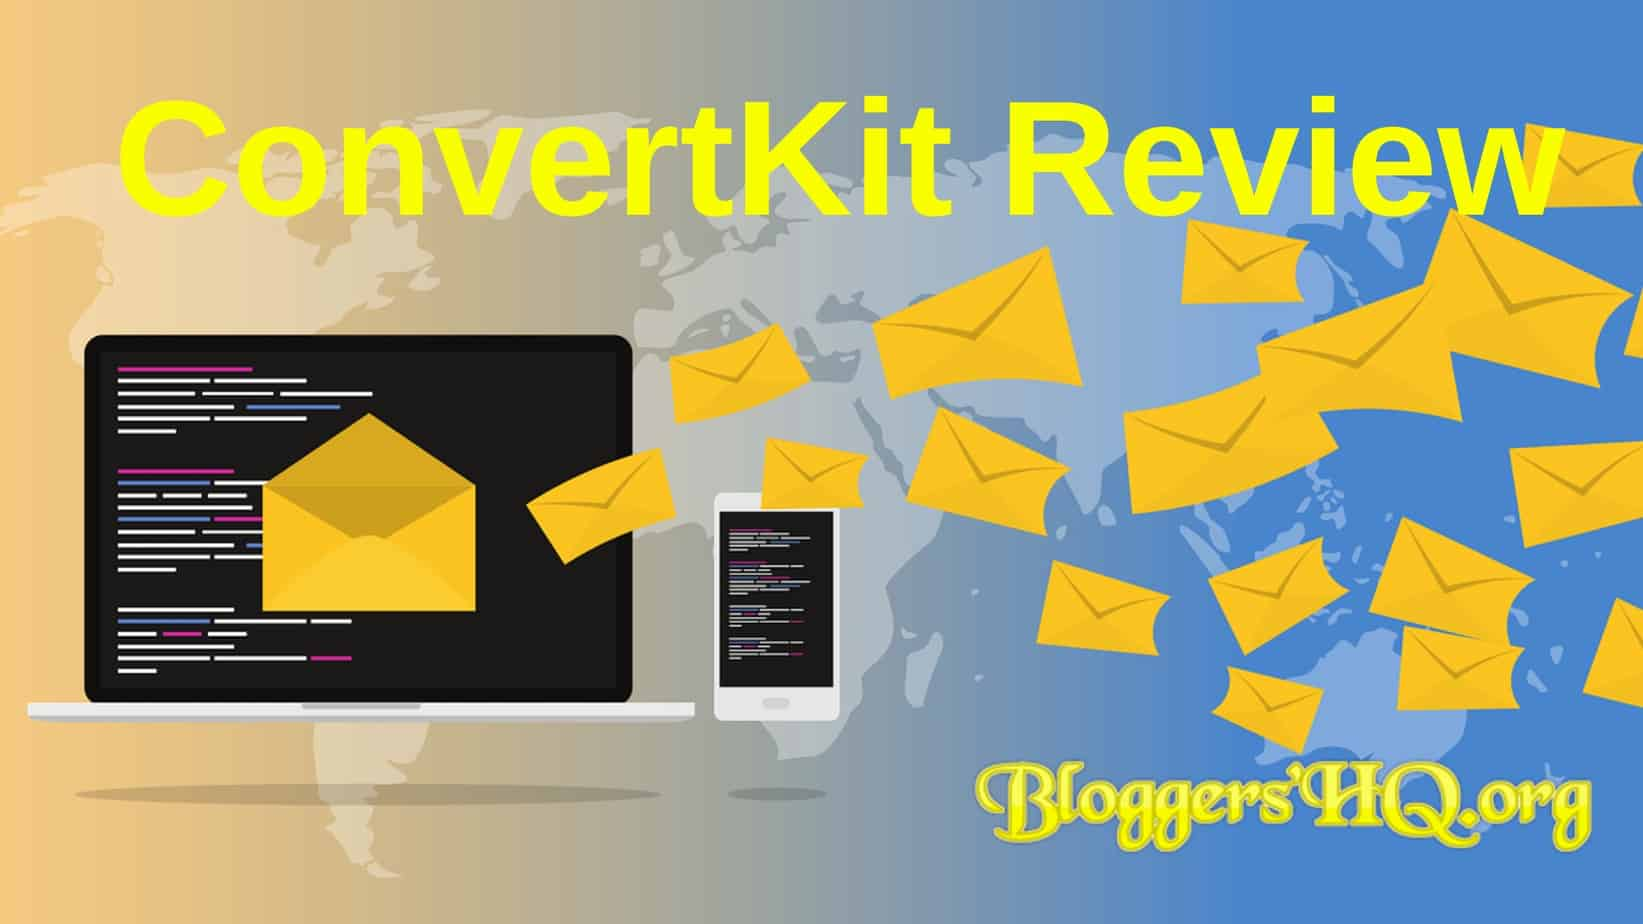 Convertkit Email Marketing Usa Online Voucher Code Printable